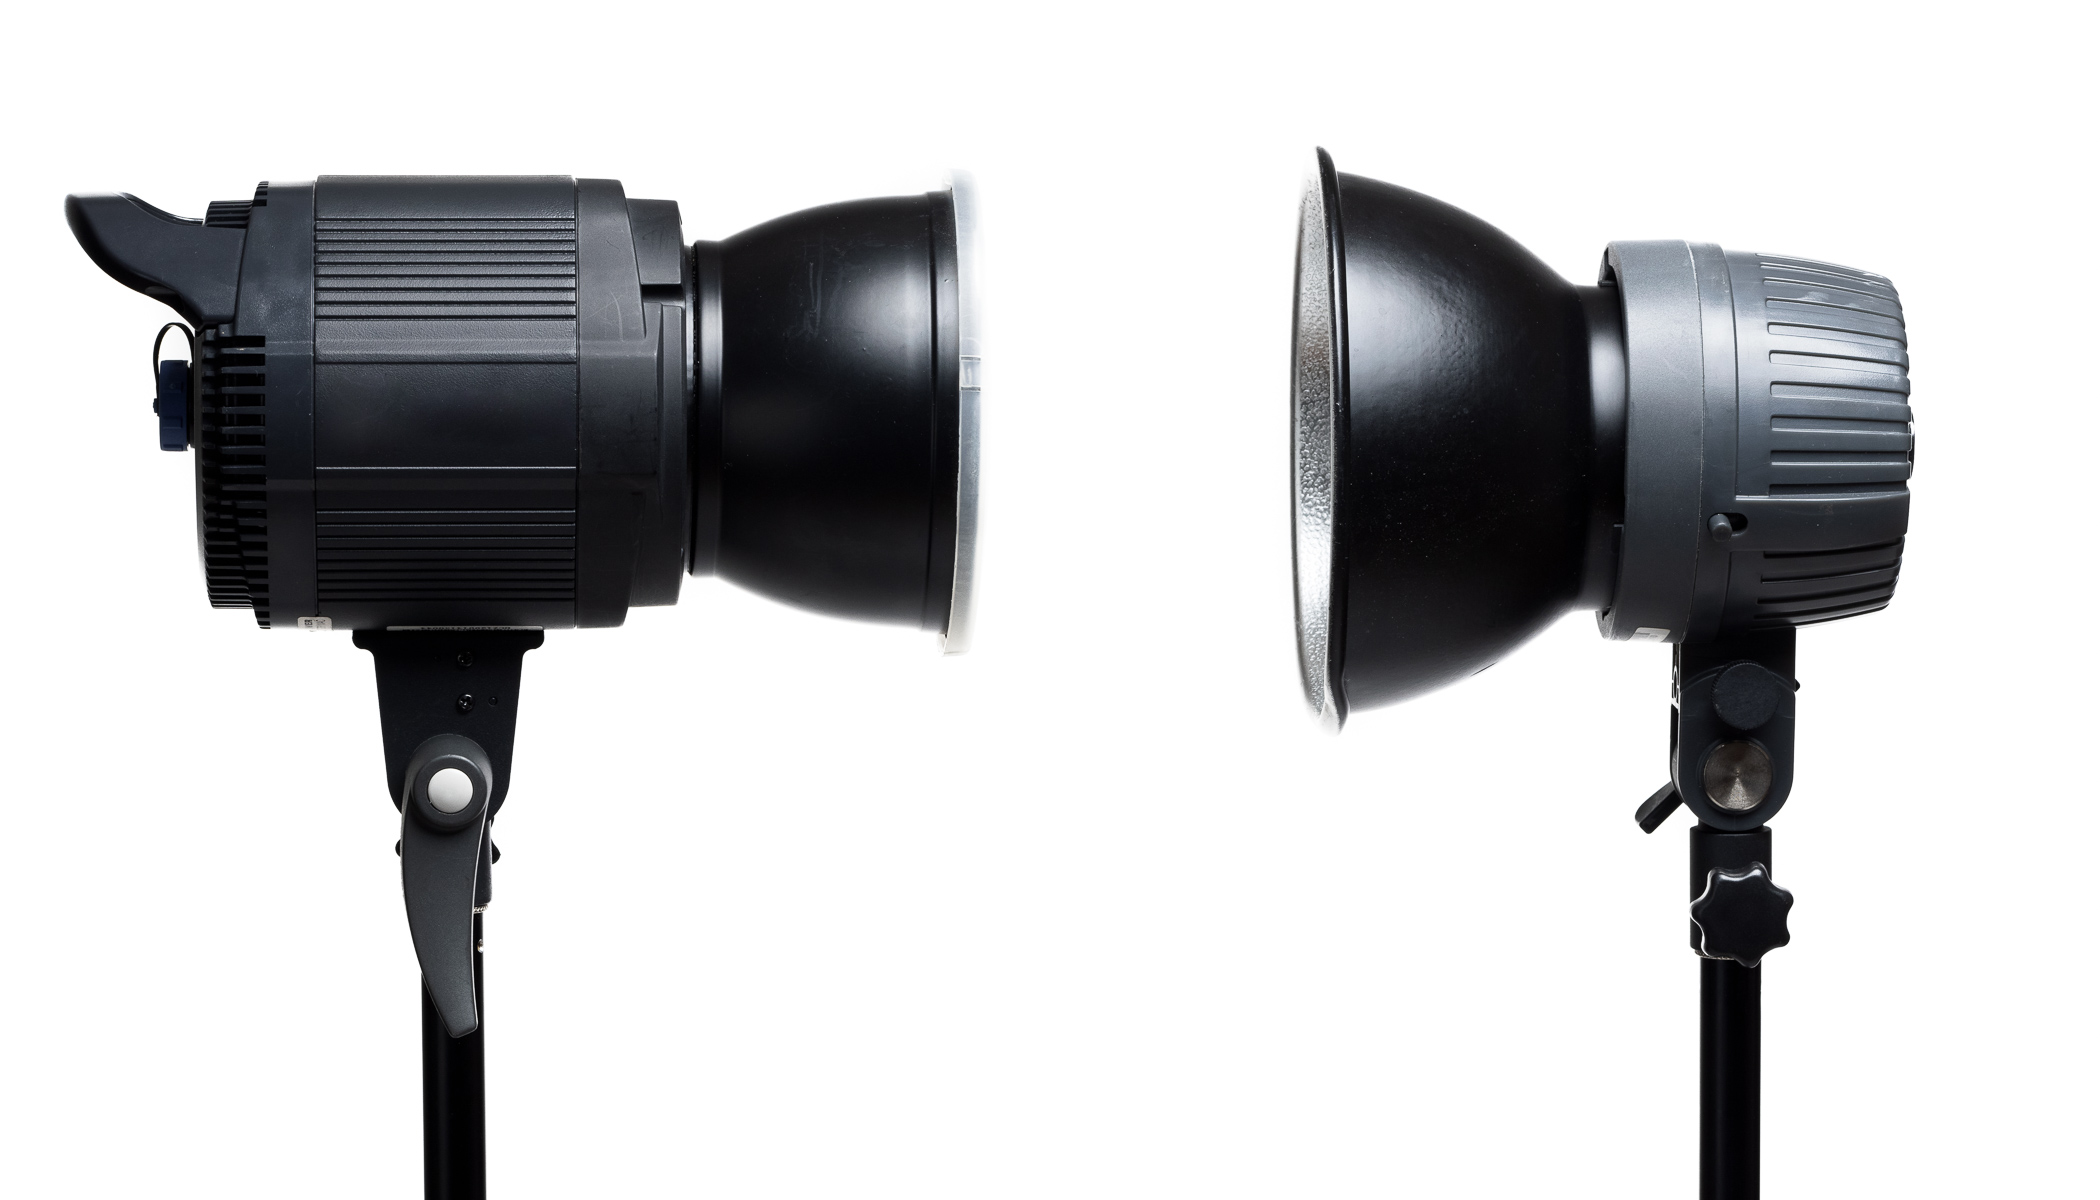 Lighting for the Studio and Outdoors An In-depth Look at Flash Photography